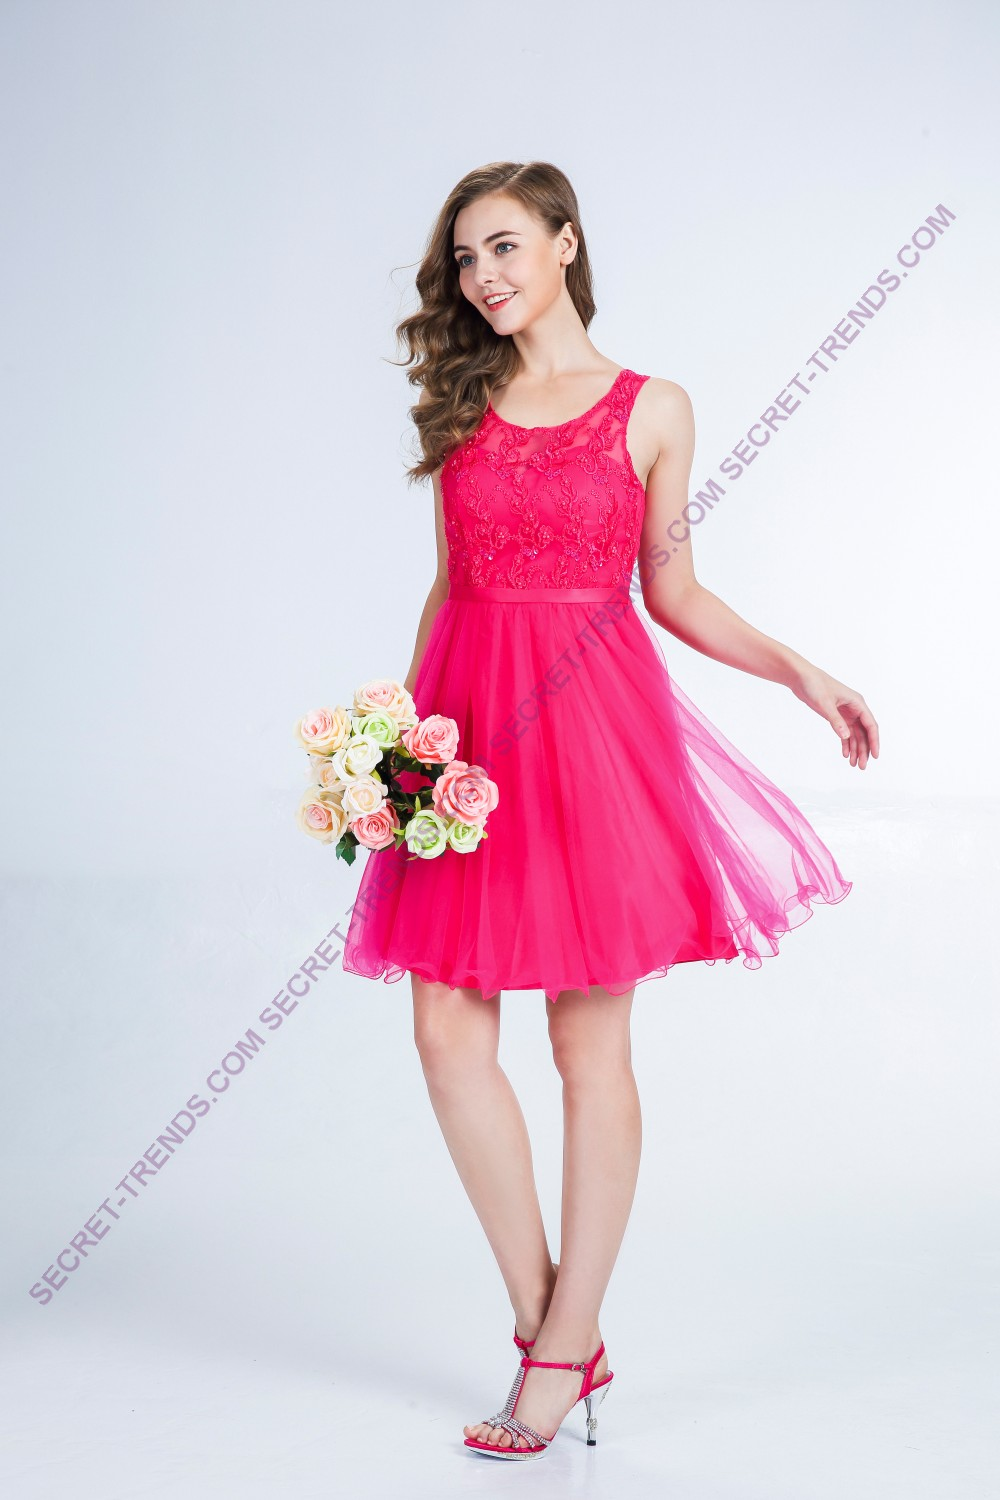 Elegant cocktail dress with floral pattern and ornate pearls R9146